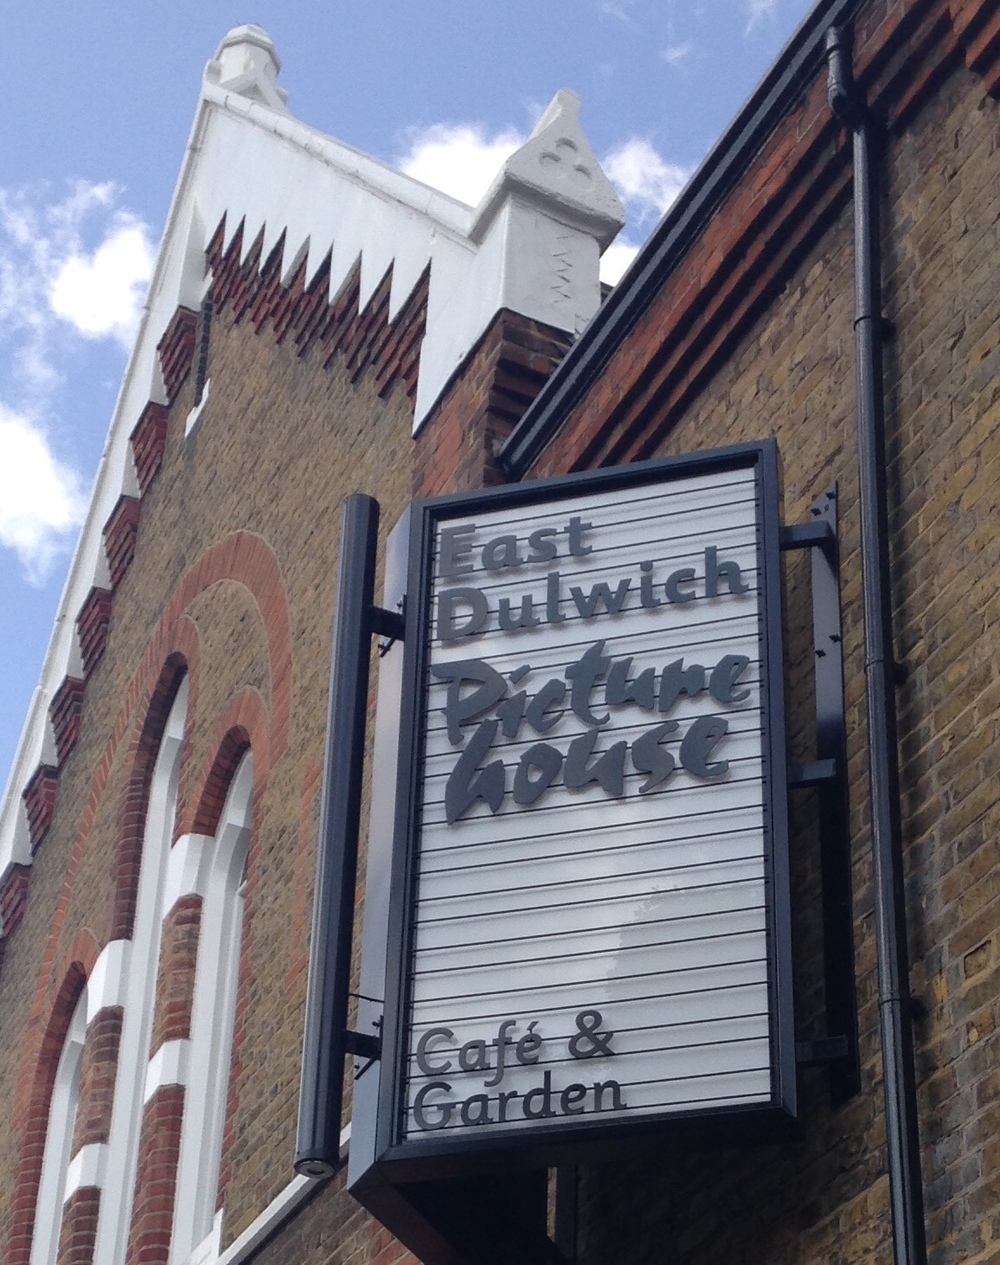 East Dulwich Picture House